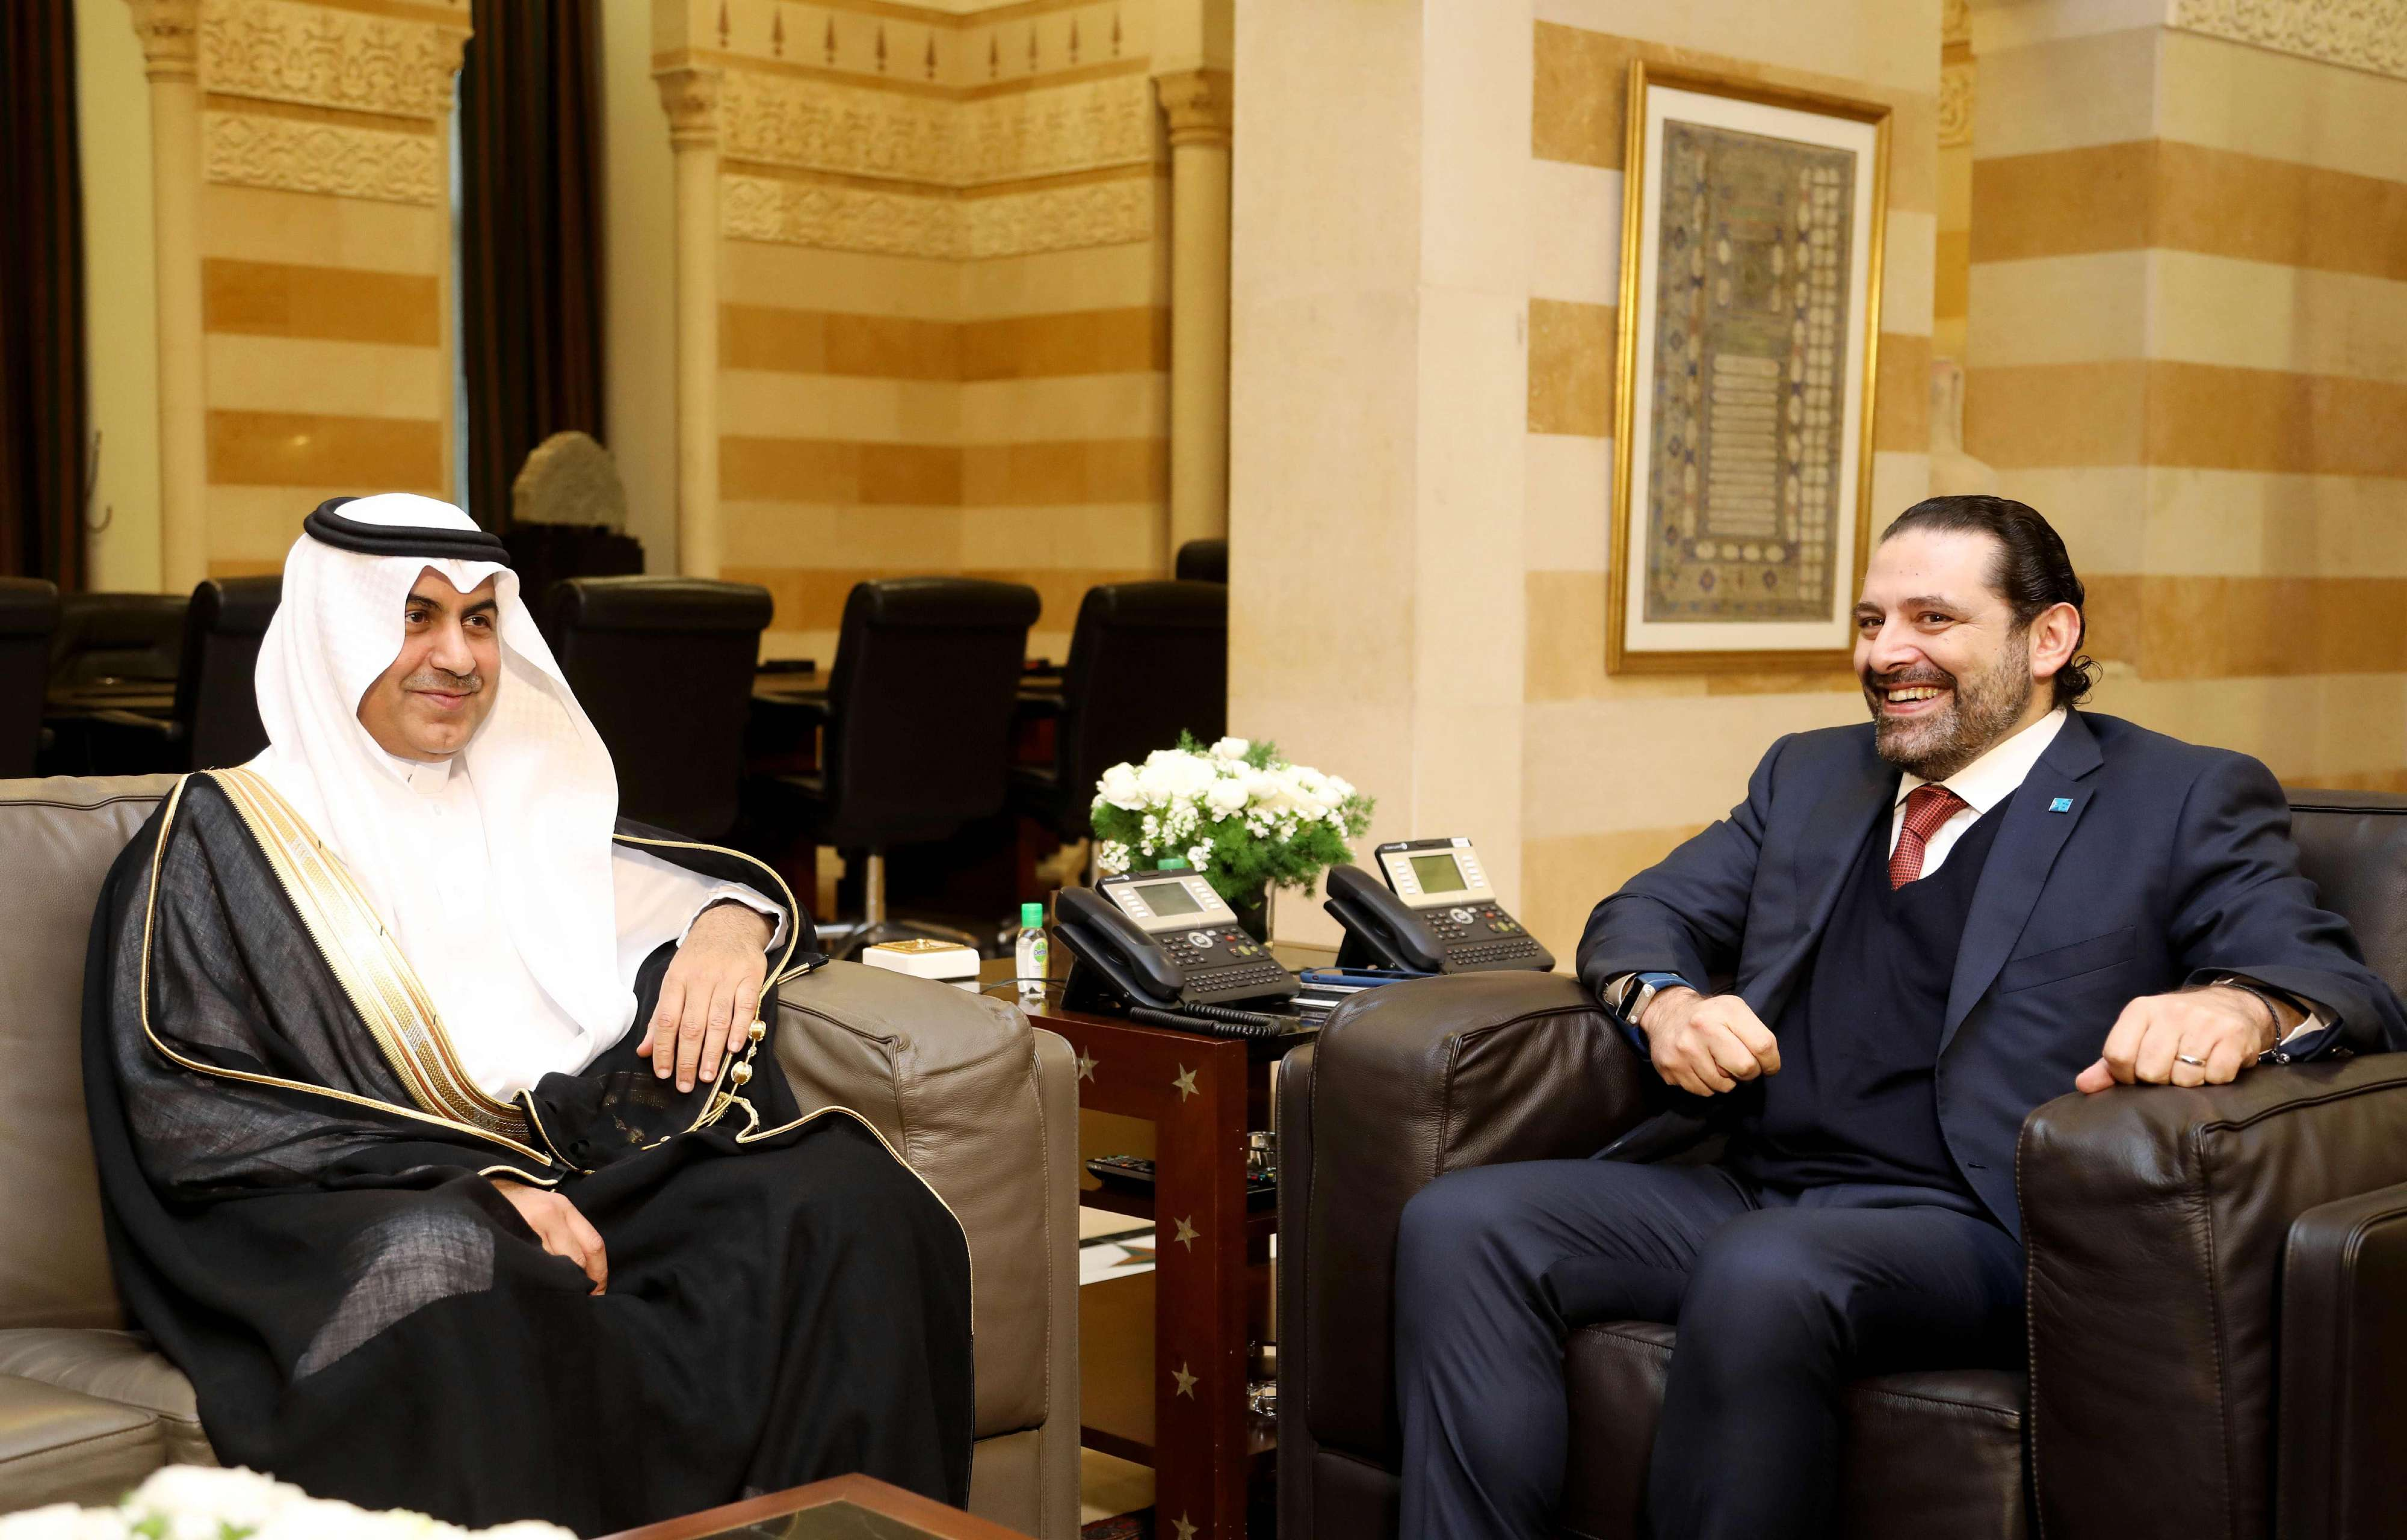 Lebanese Prime Minister Saad Hariri (R) meets with Saudi envoy Nizar al-Aloula at the governmental palace in Beirut, on February 26. (AFP)